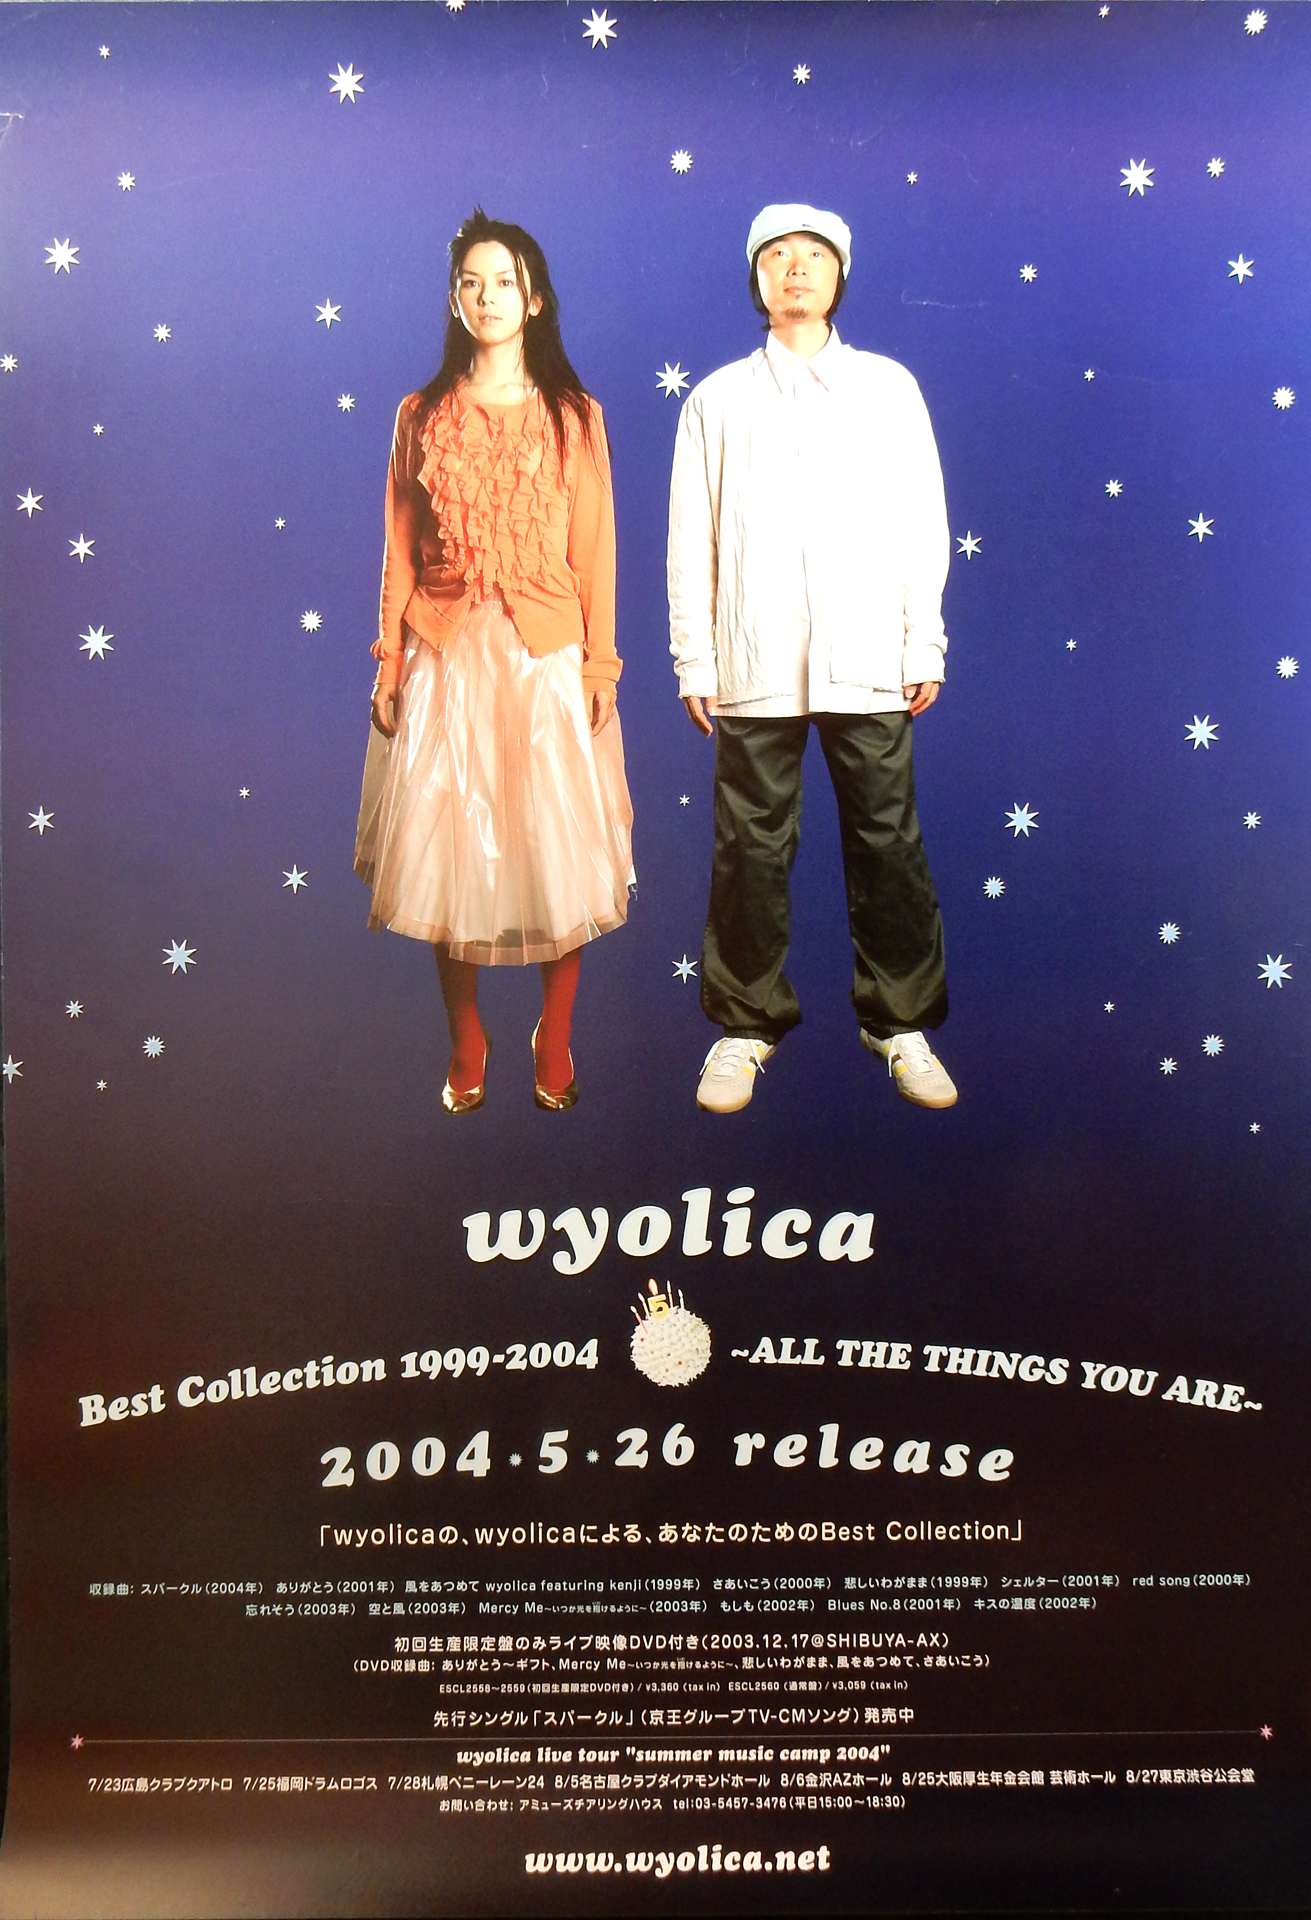 wyolica (ワイヨリカ)Best Collection 1999-2004  -ALL THE THINGS YOU ARE-のポスター